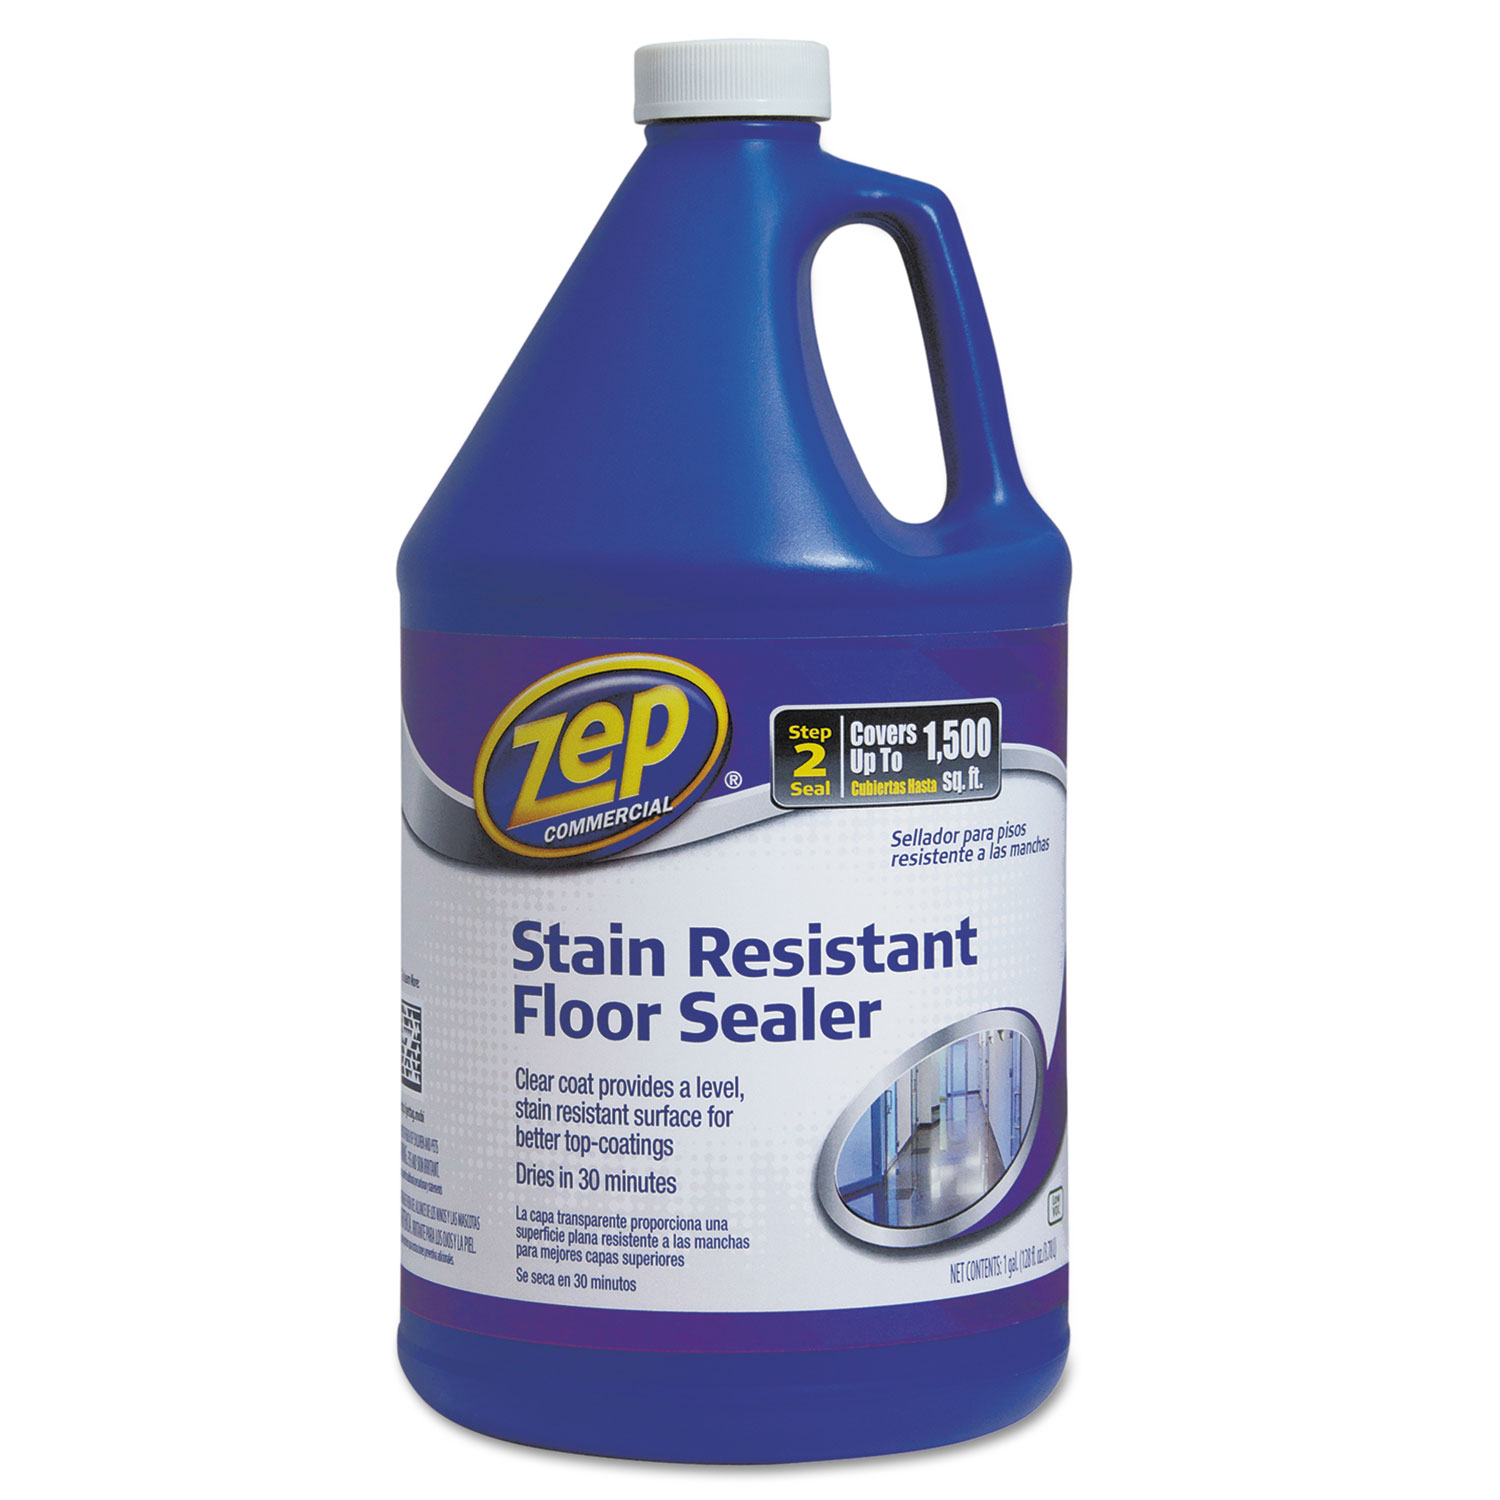 Stain Resistant Floor Sealer By Zep Commercial 174 Zpe1044994